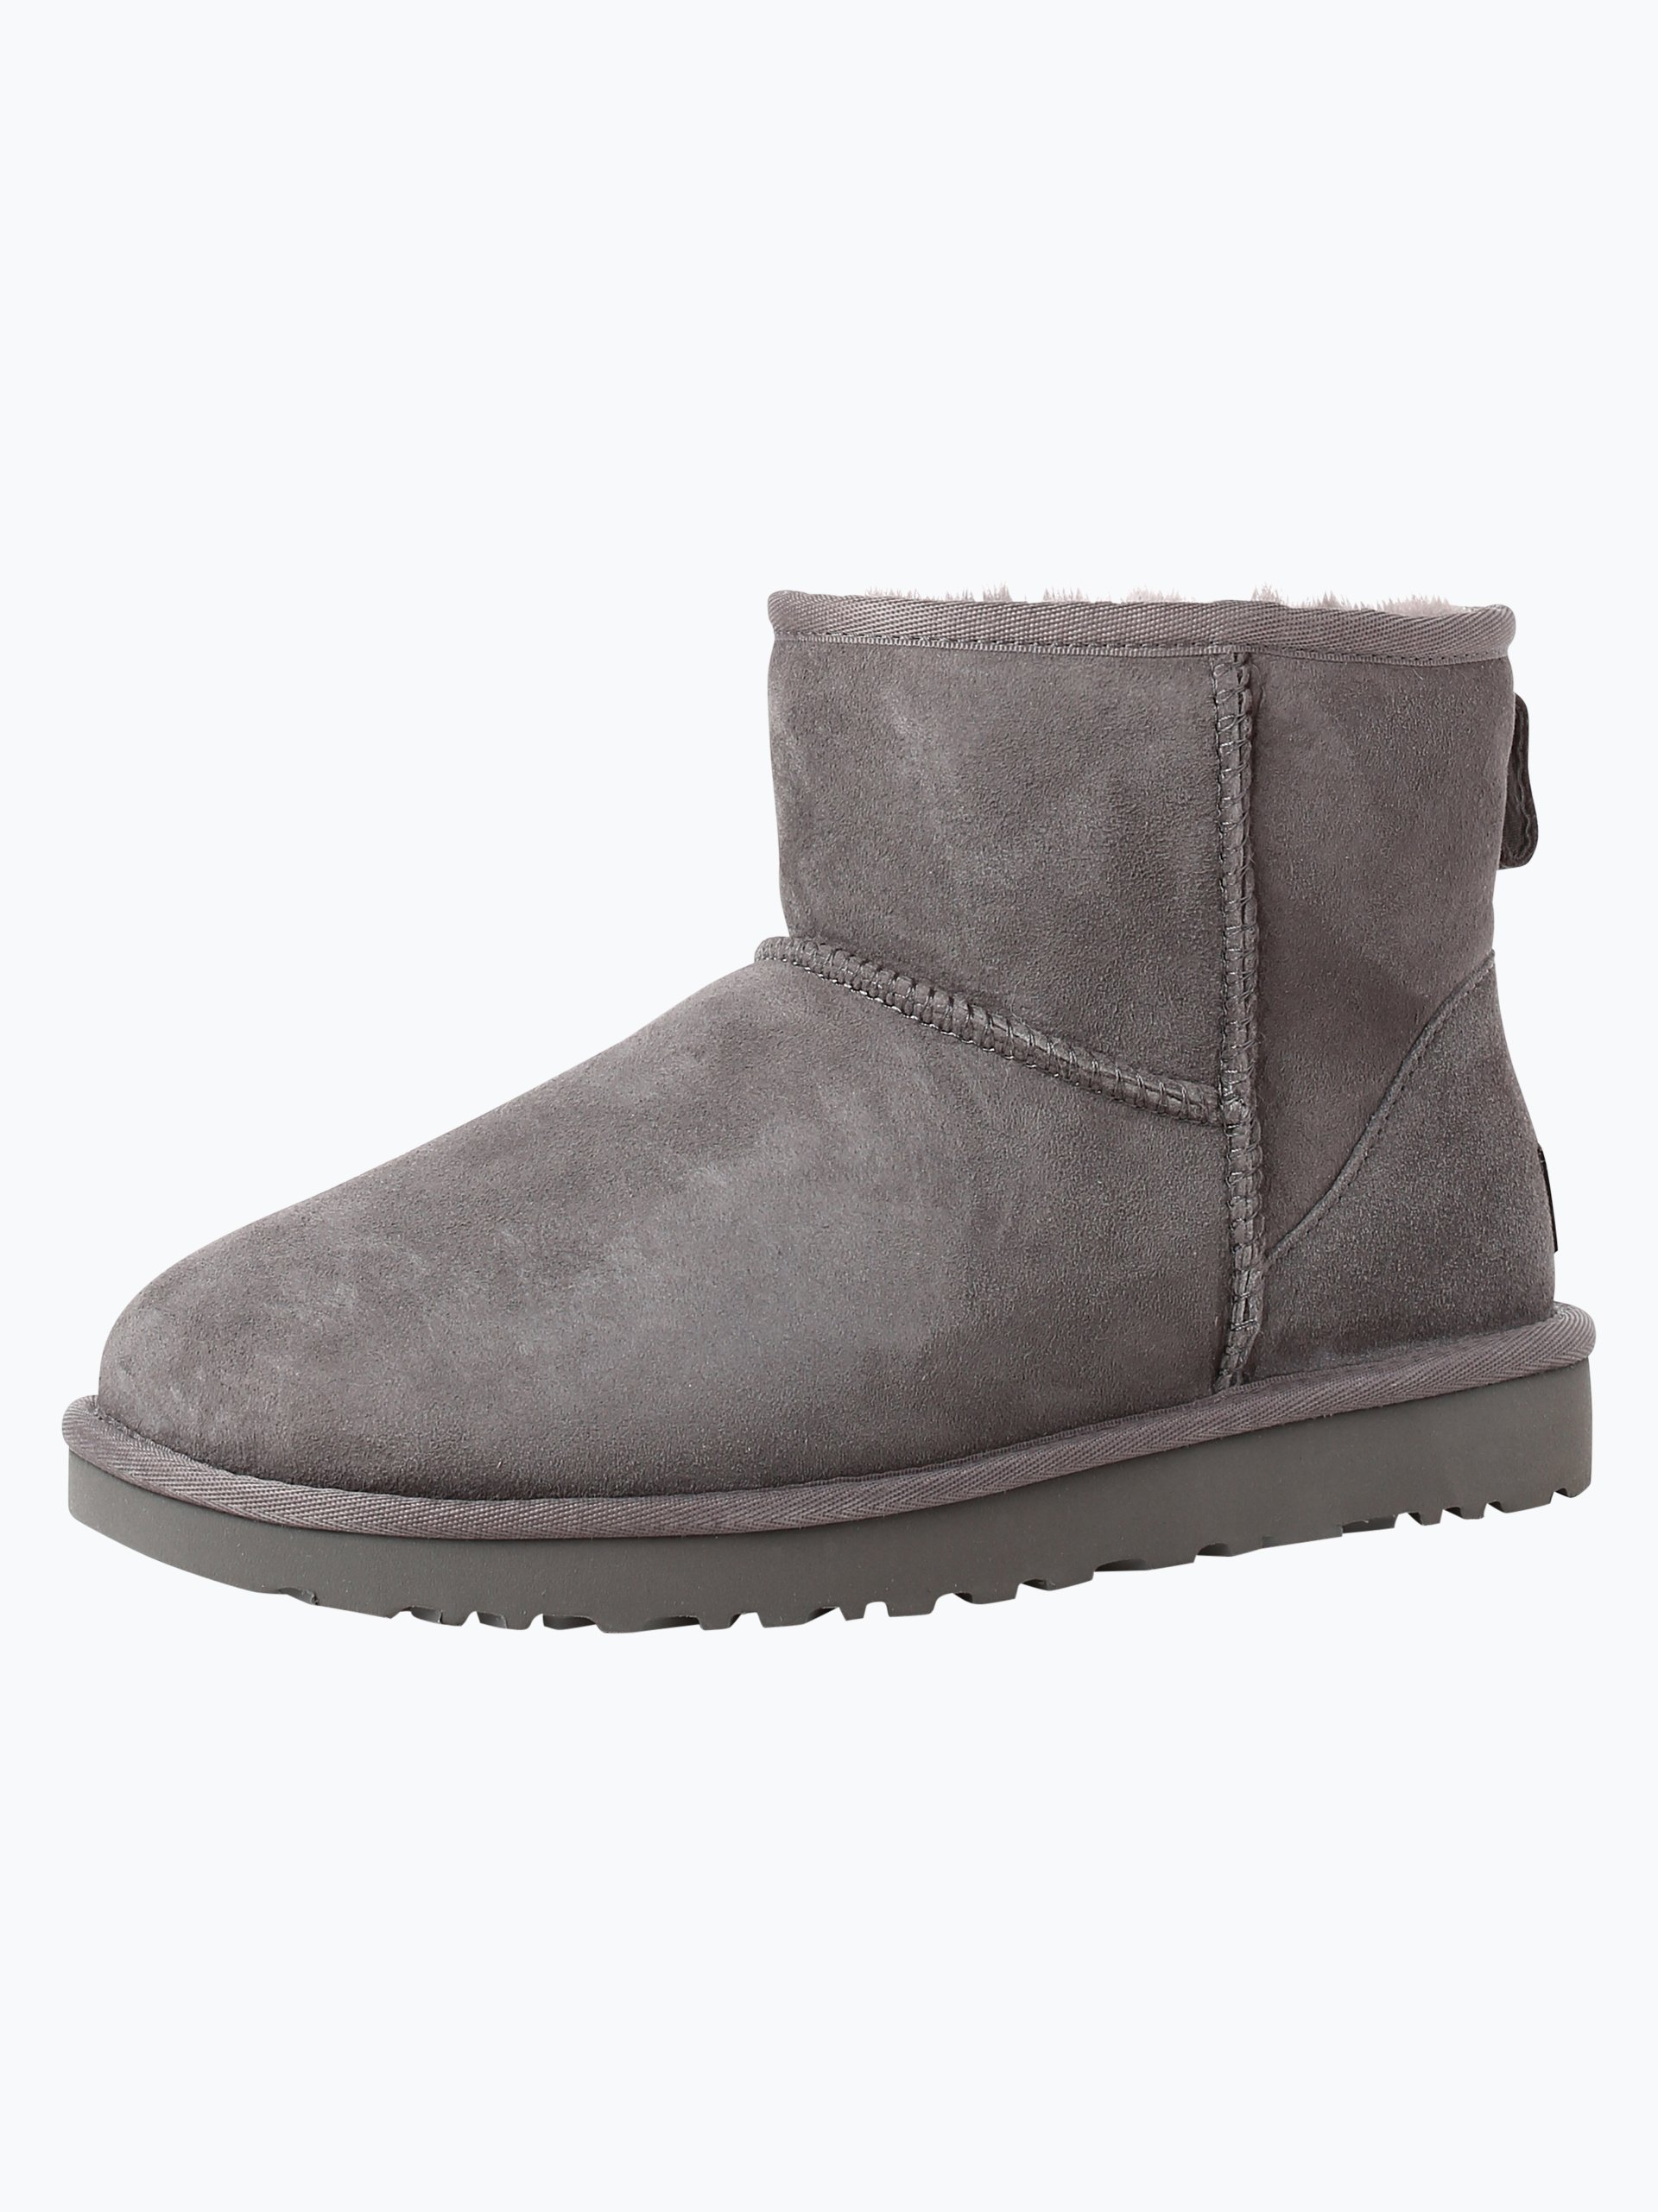 ugg damen boots aus leder grau uni online kaufen peek und cloppenburg de. Black Bedroom Furniture Sets. Home Design Ideas